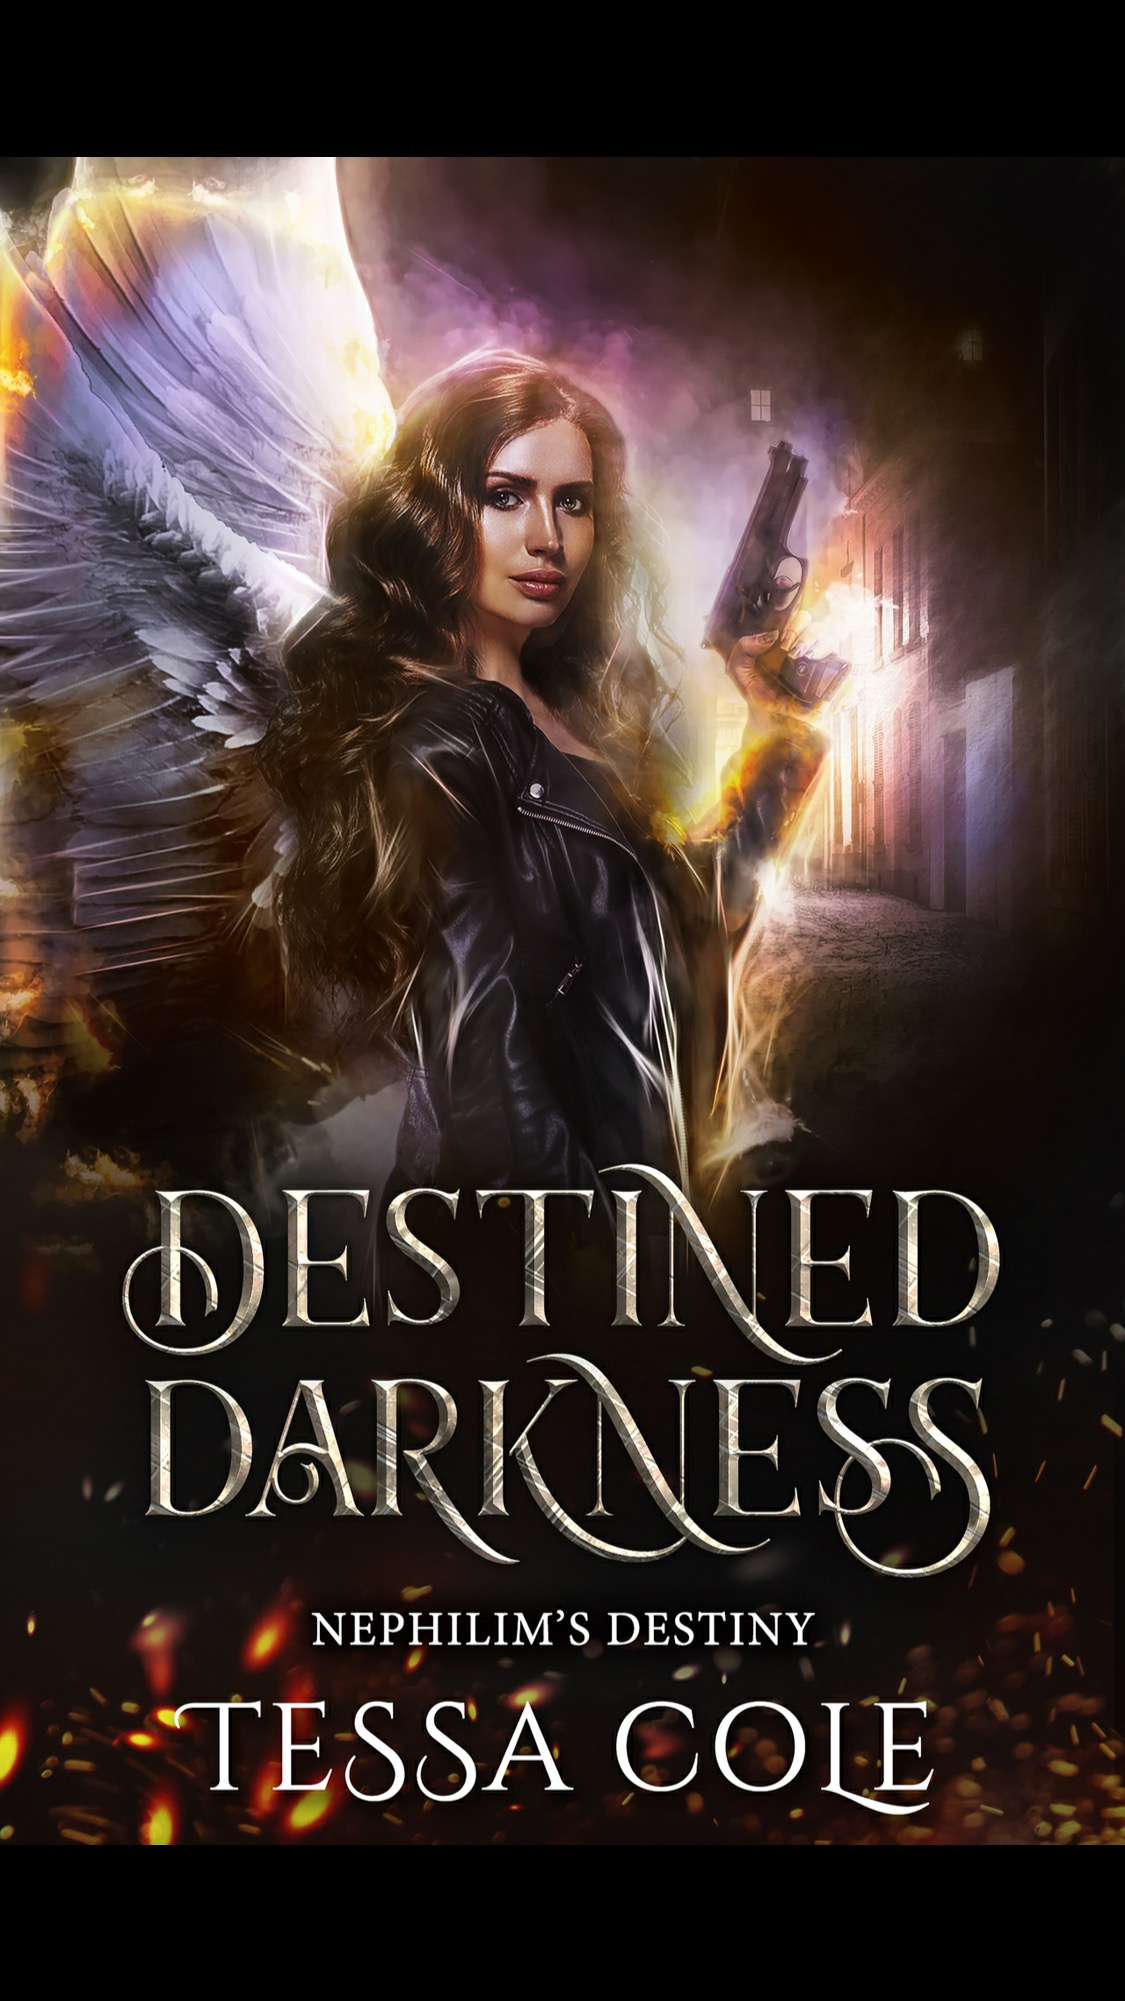 Destined Darkness by Tessa Cole – A Book Review